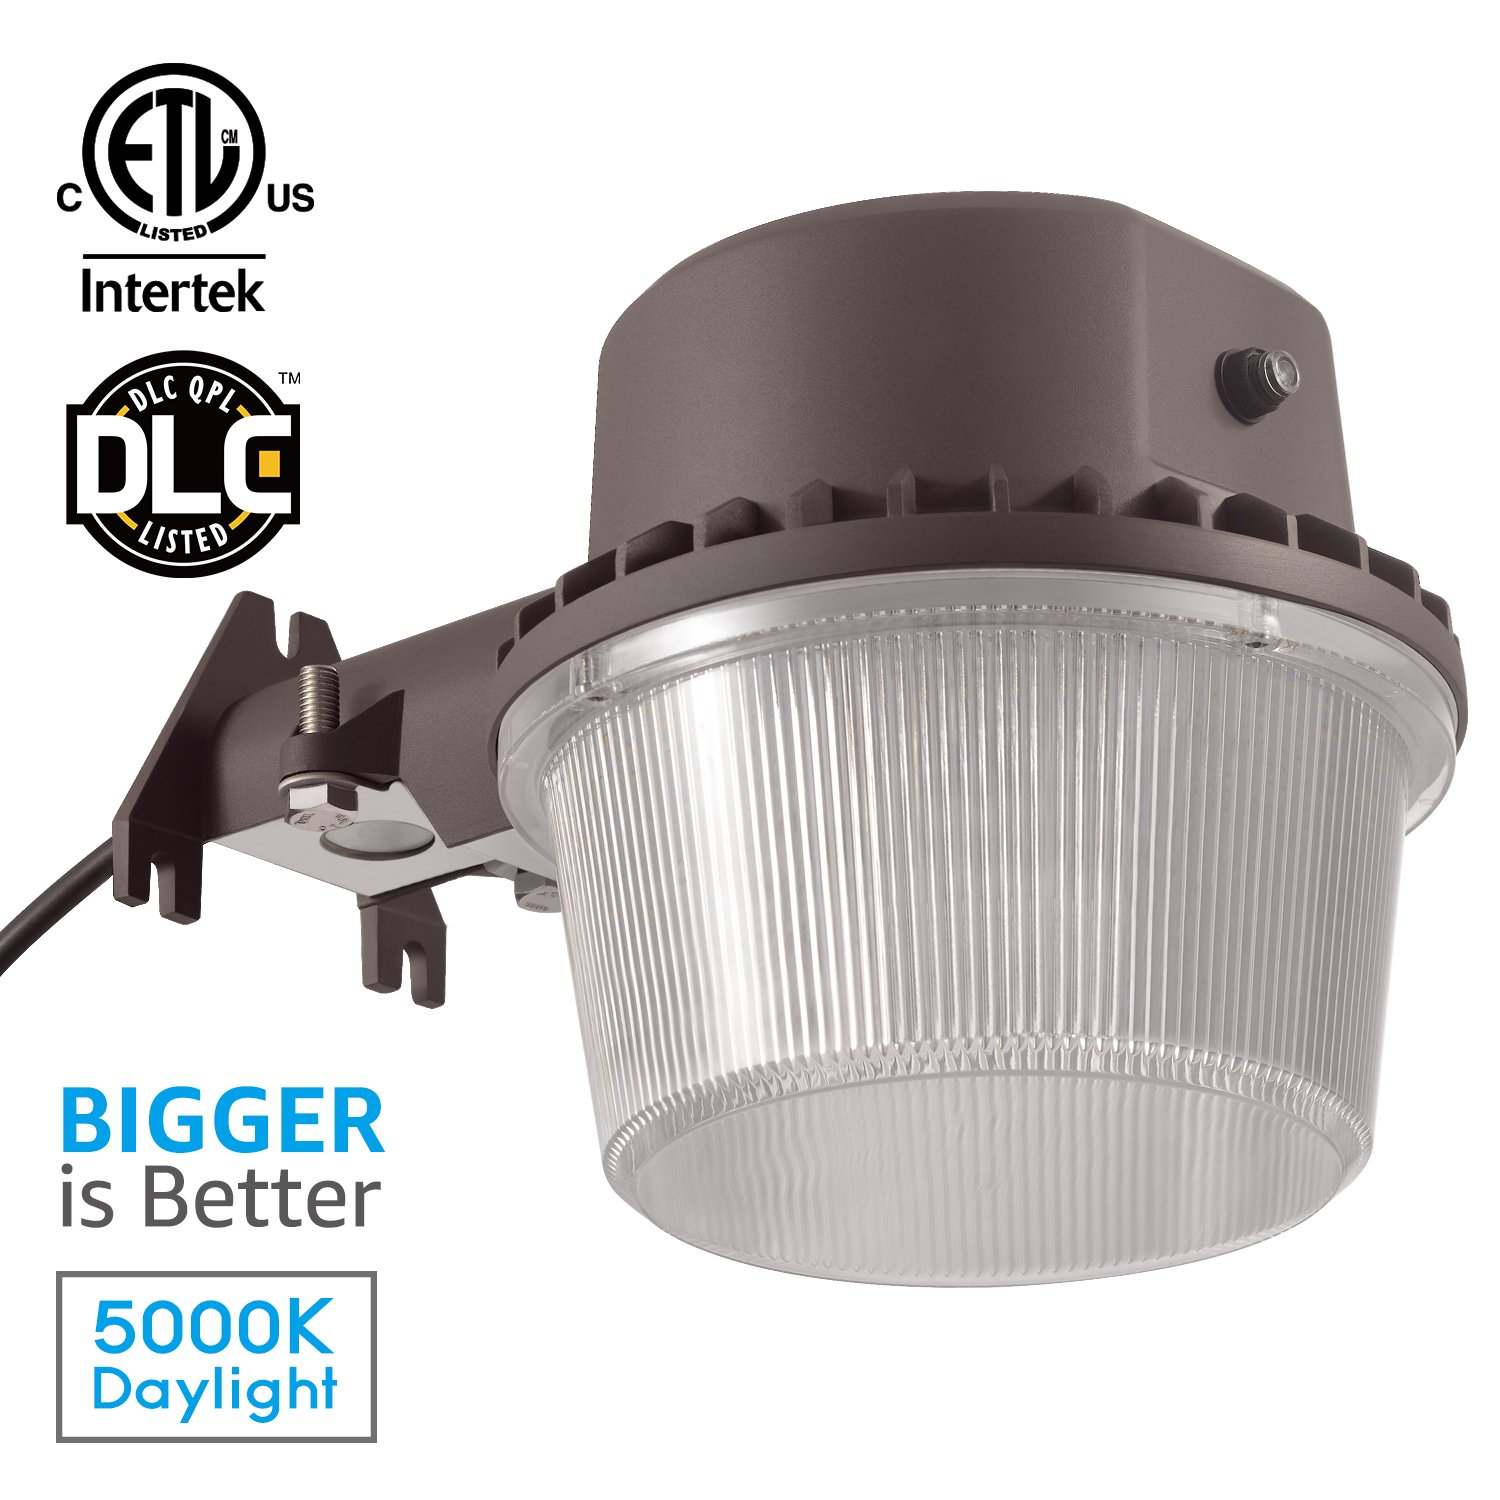 lumens bulb bay to watt replacement cfl comparable or halide metal corn intertek base high for hid bobcat lighting products hps light retrofit led fixtures